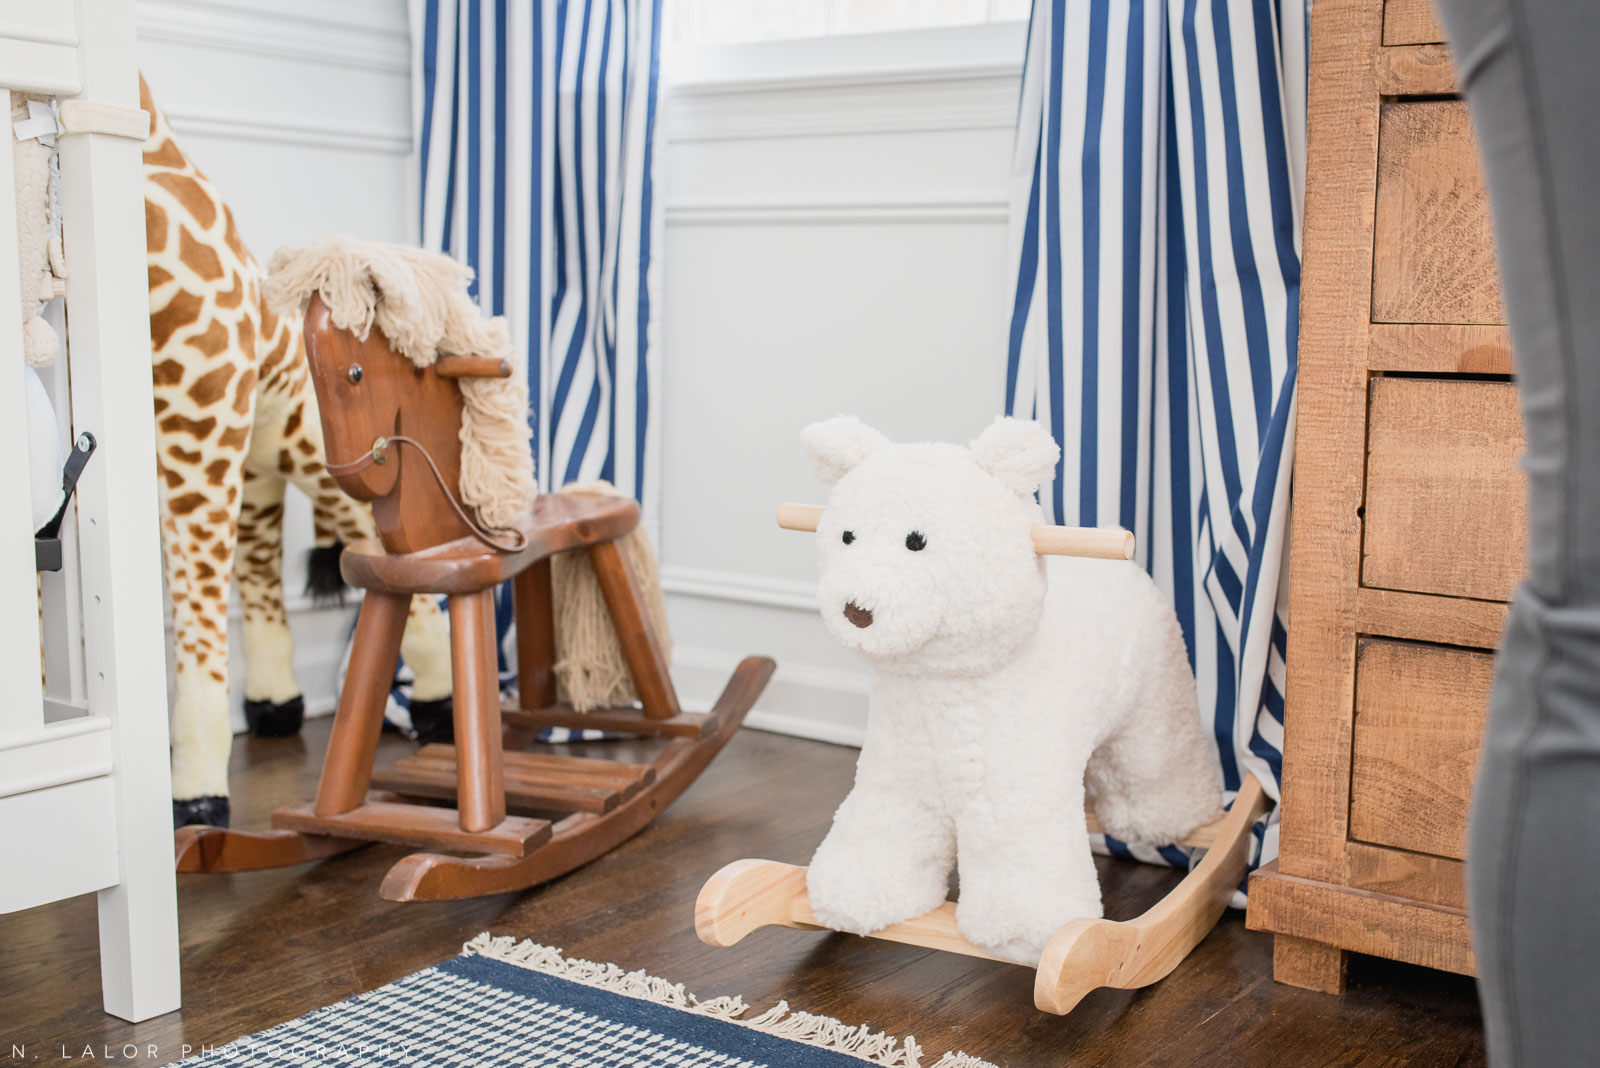 Baby boy nursery with rocking horse and bear. Photo by N. Lalor Photography.